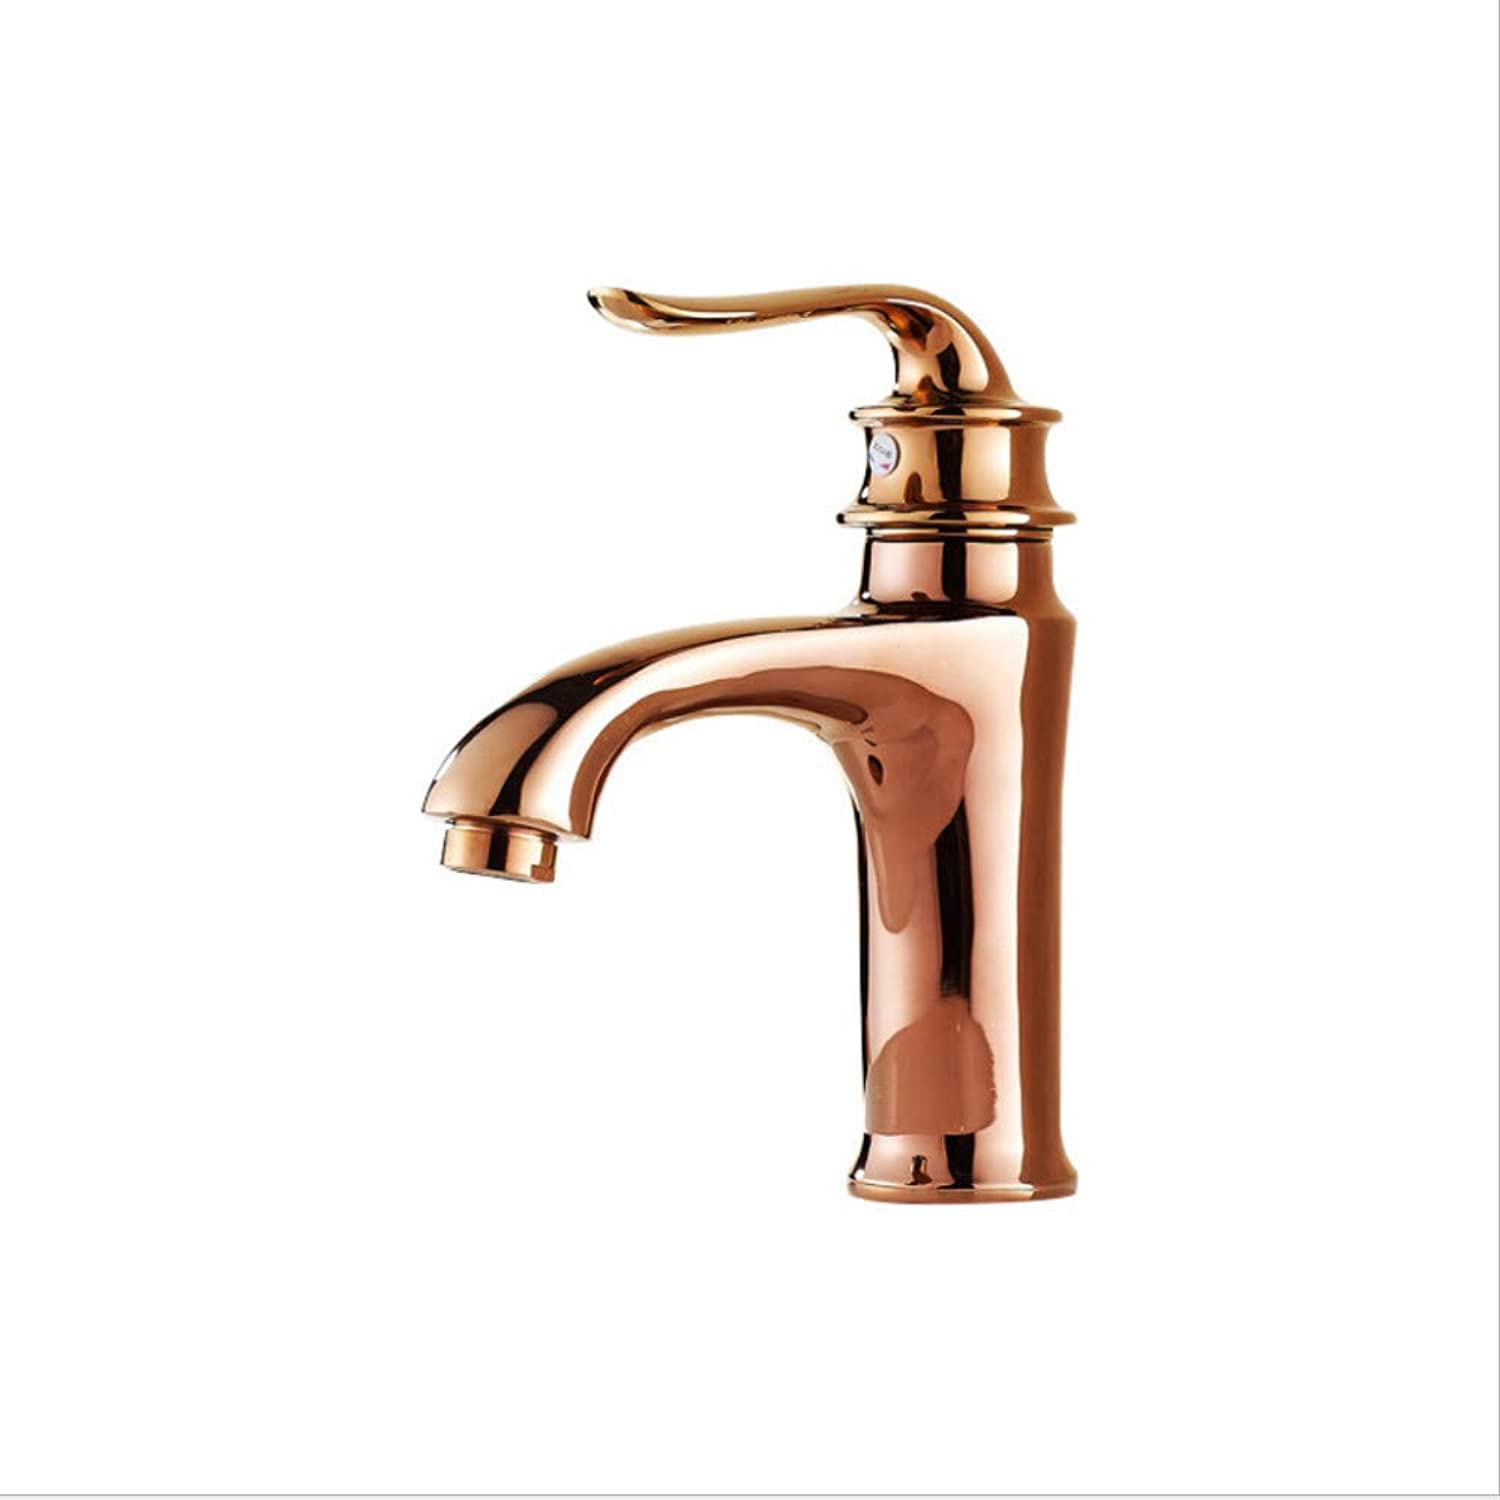 Faucet All Copper Basin Basin hot and Cold Water Faucet European high-end pink gold Faucet